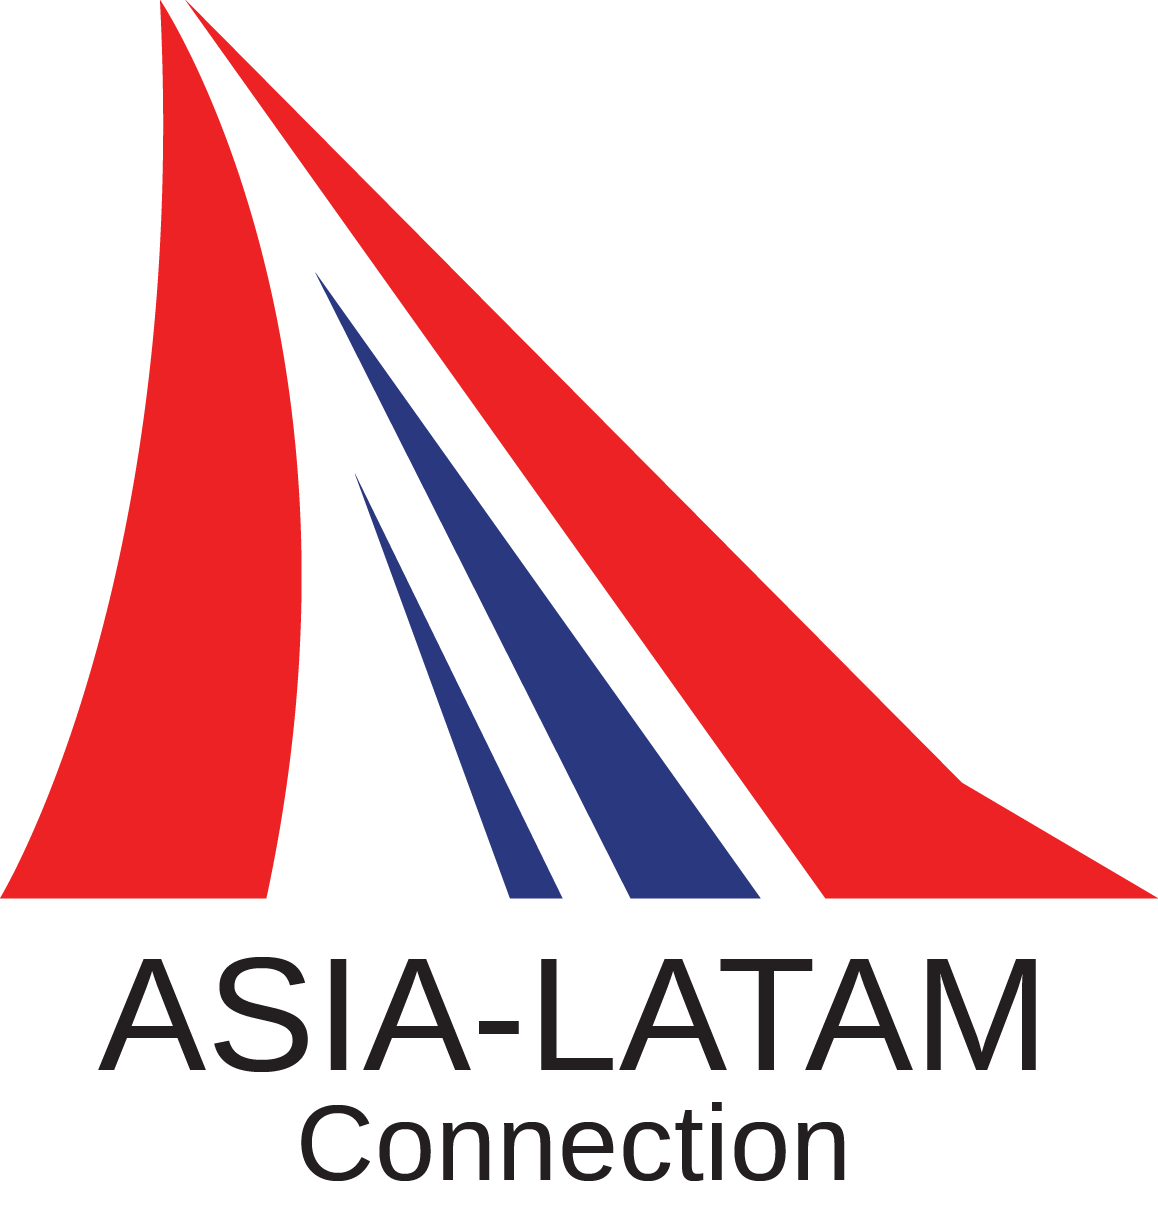 ASIA-LATAM Connection